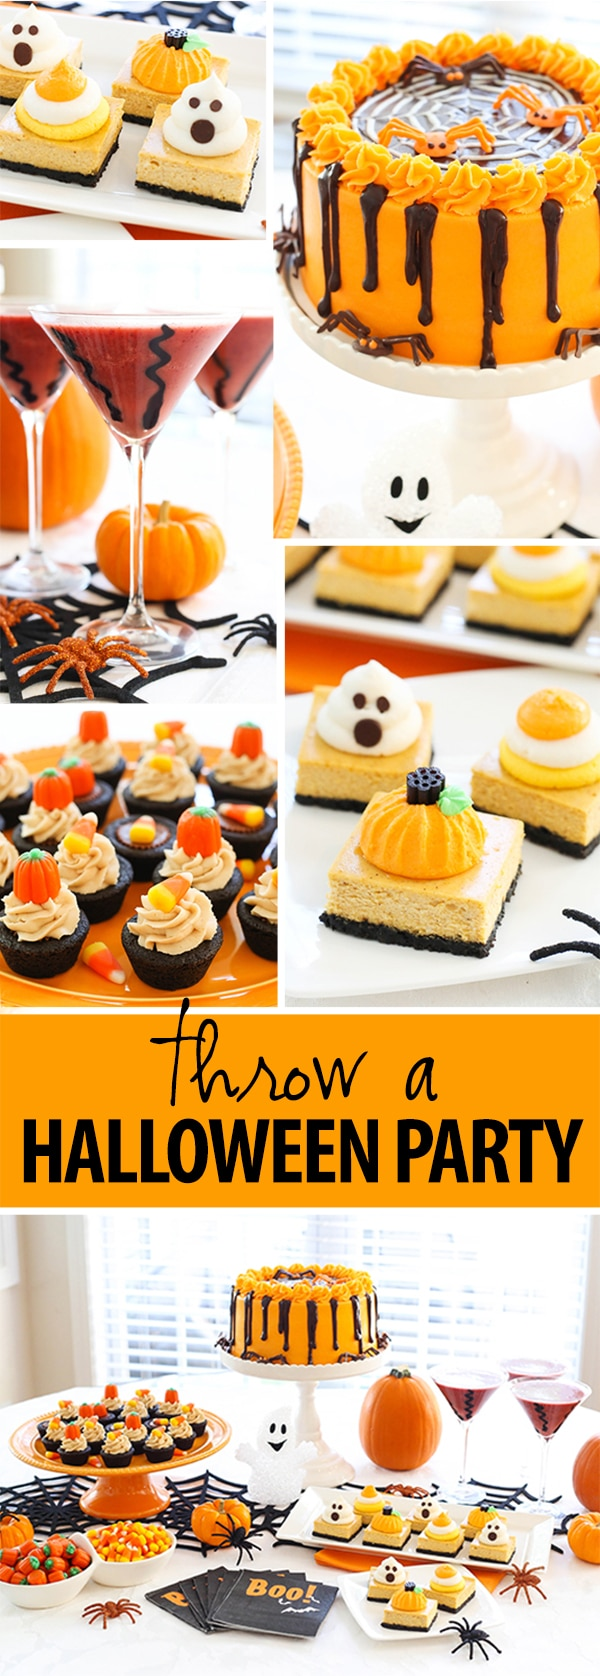 Throw a Halloween Party! Pumpkin Cheesecake Bars recipe included!